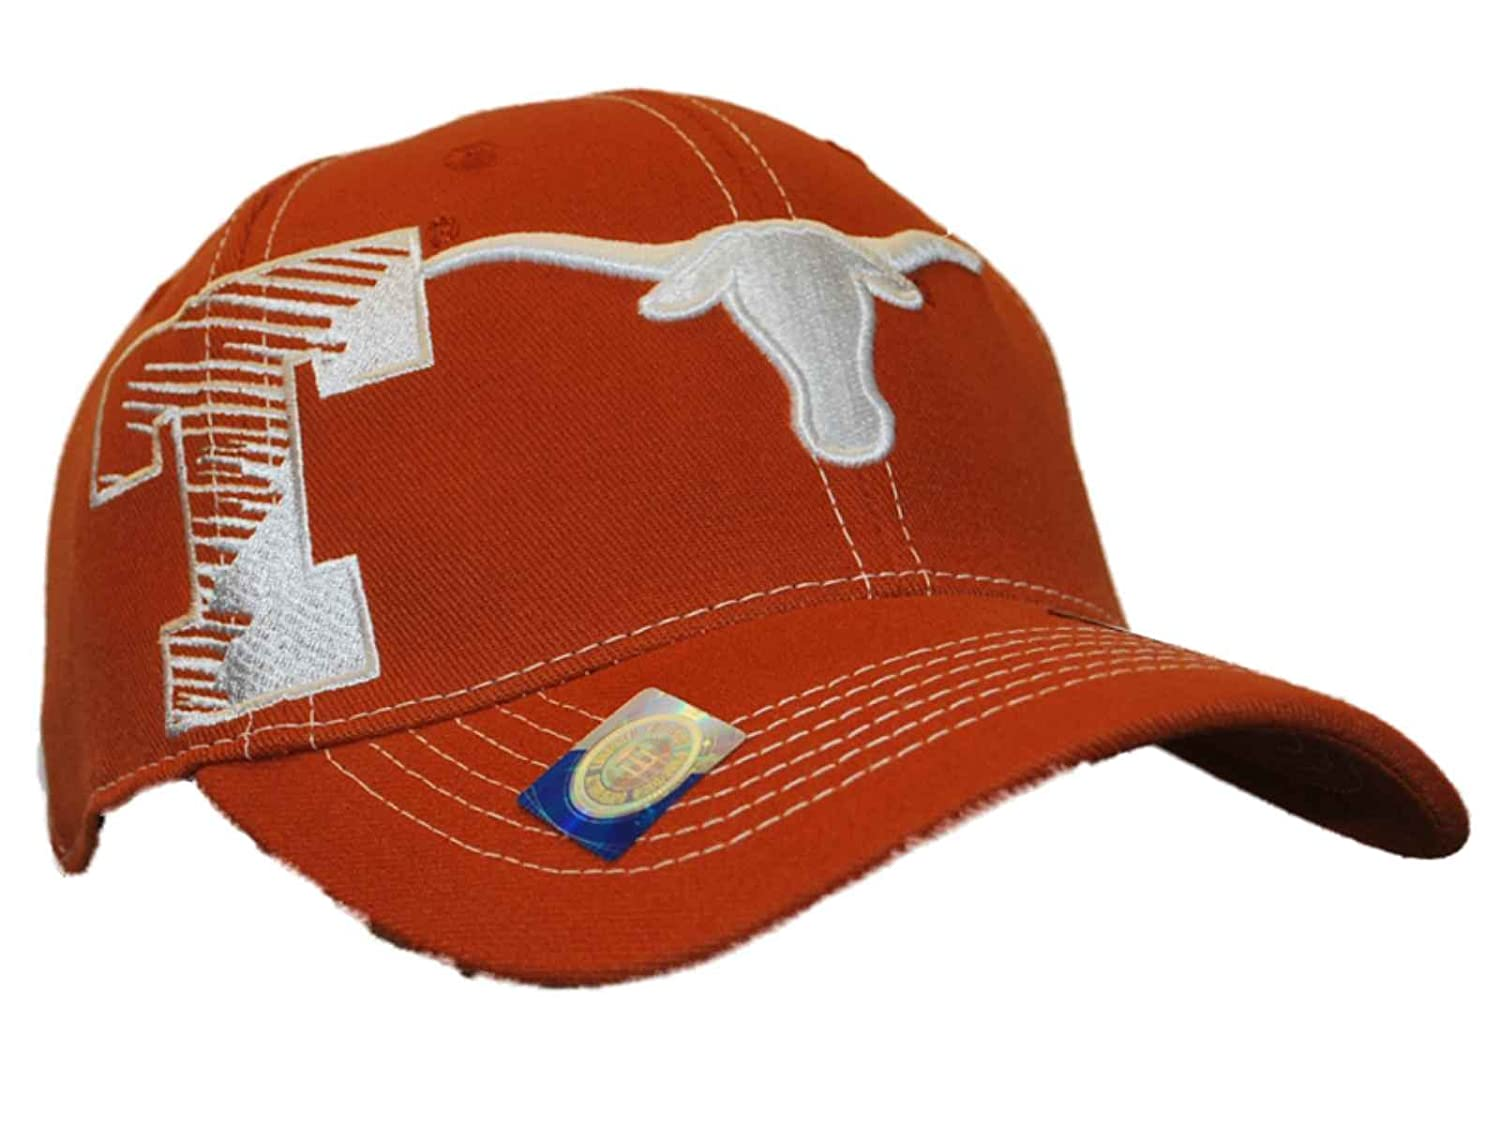 online store 1a67e 1ddab Amazon.com  NCAA Top of the World Texas Longhorns Sketch One-Fit Hat - Burnt  Orange  Clothing